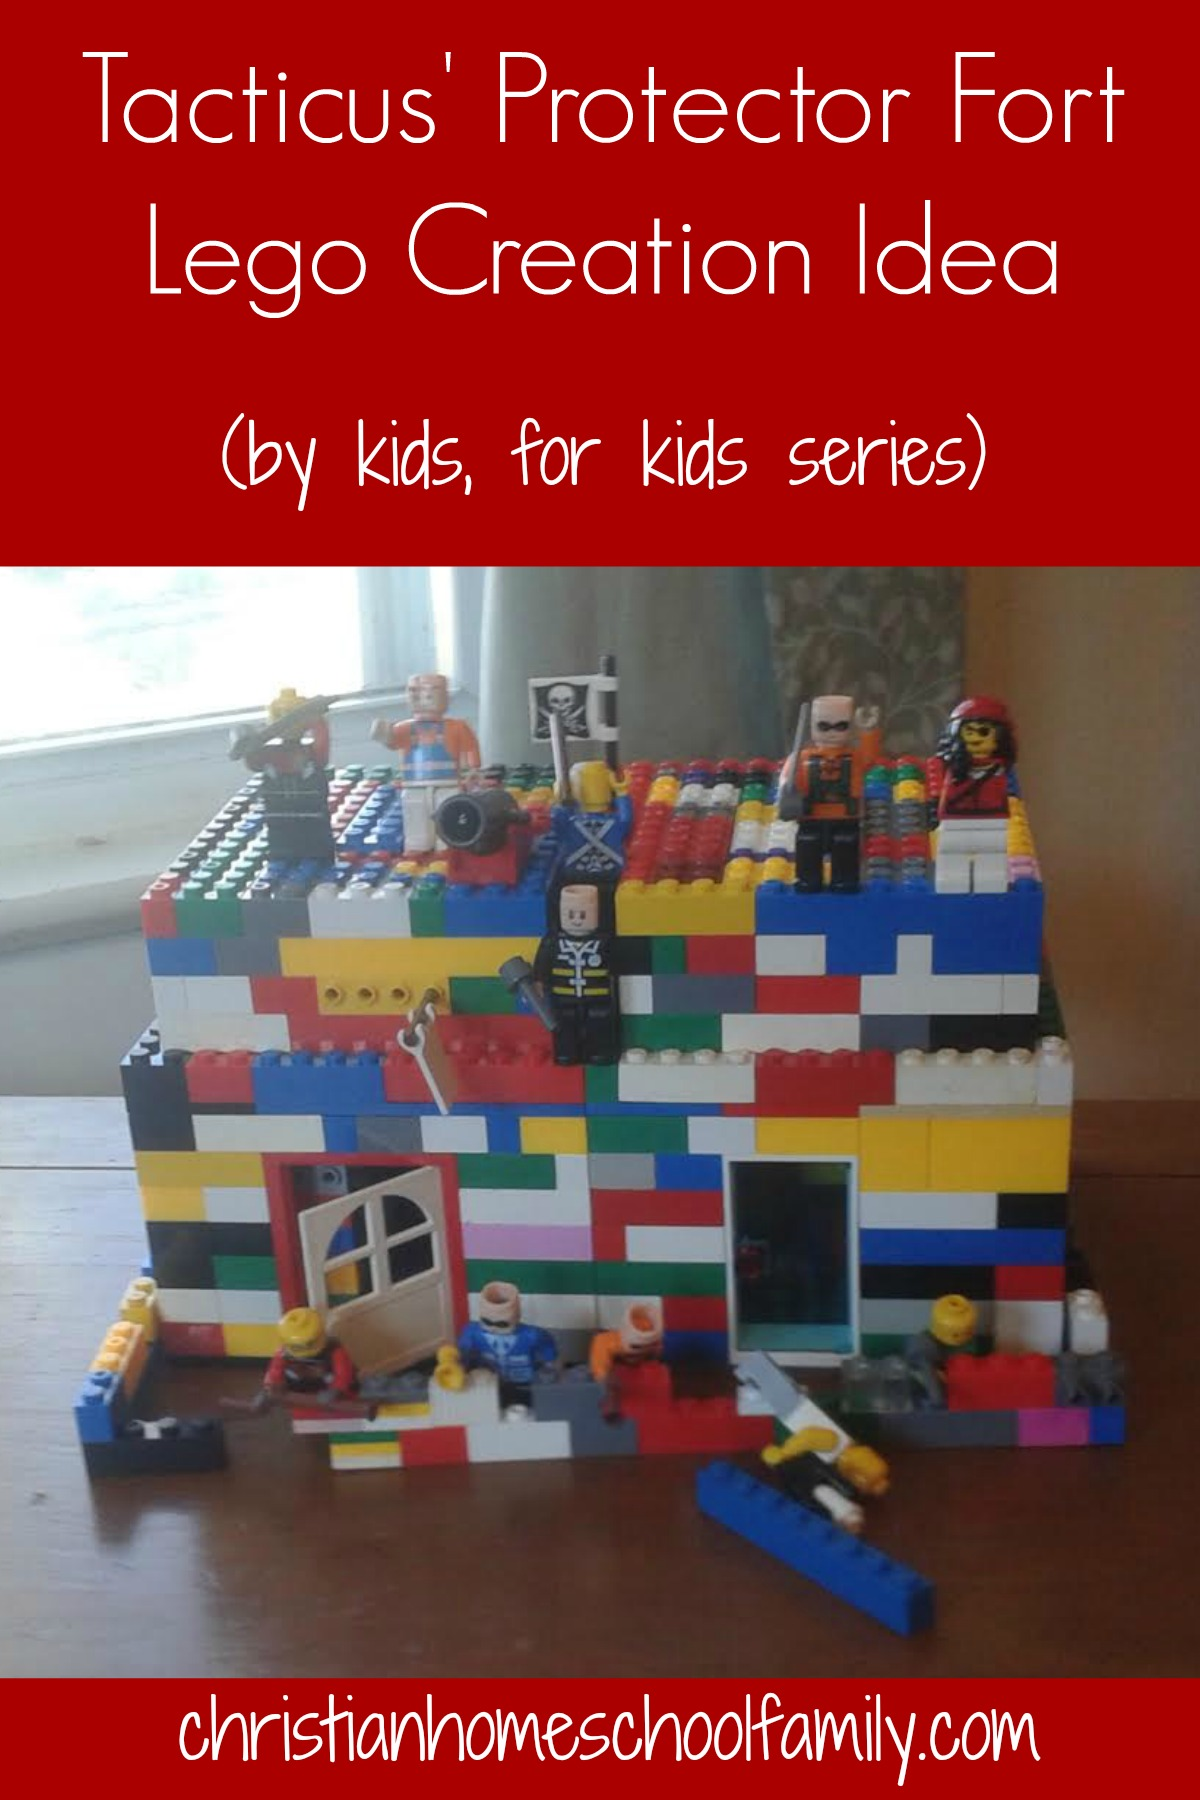 Lego fort creation idea | Christian Homeschool Family